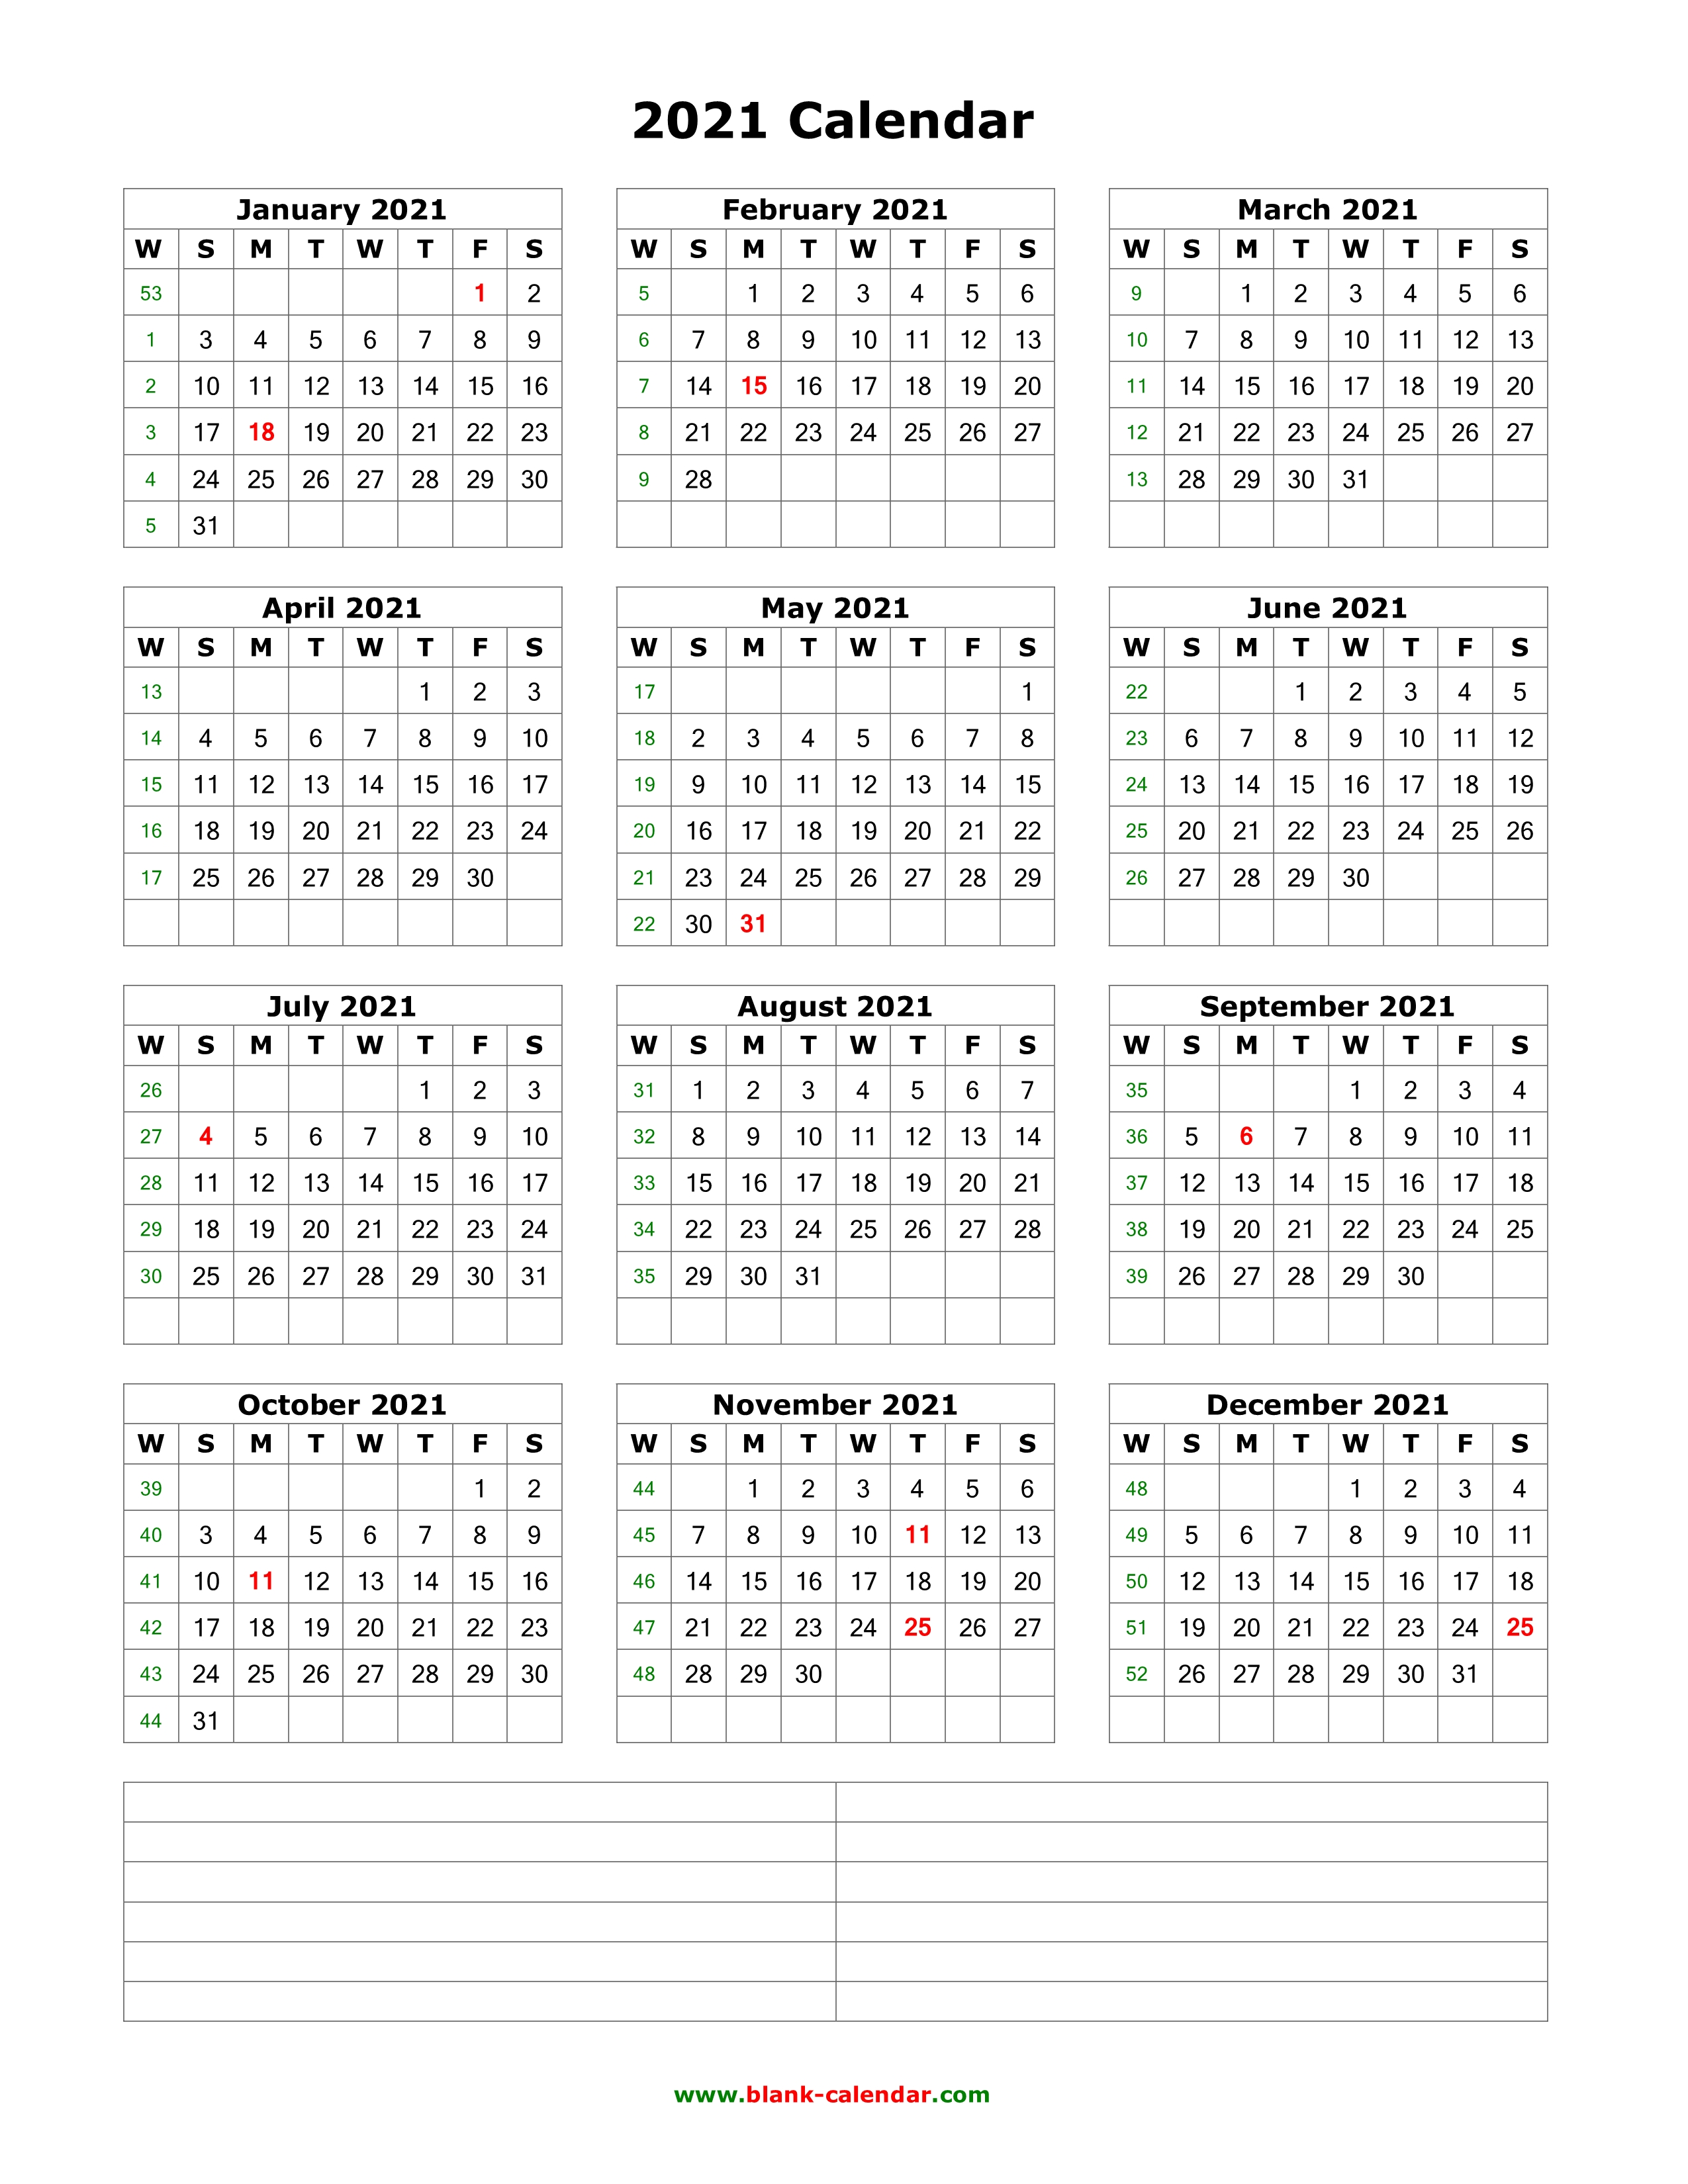 2021 1 Page Calendar Download Blank Calendar 2021 with Space for Notes (12 months on